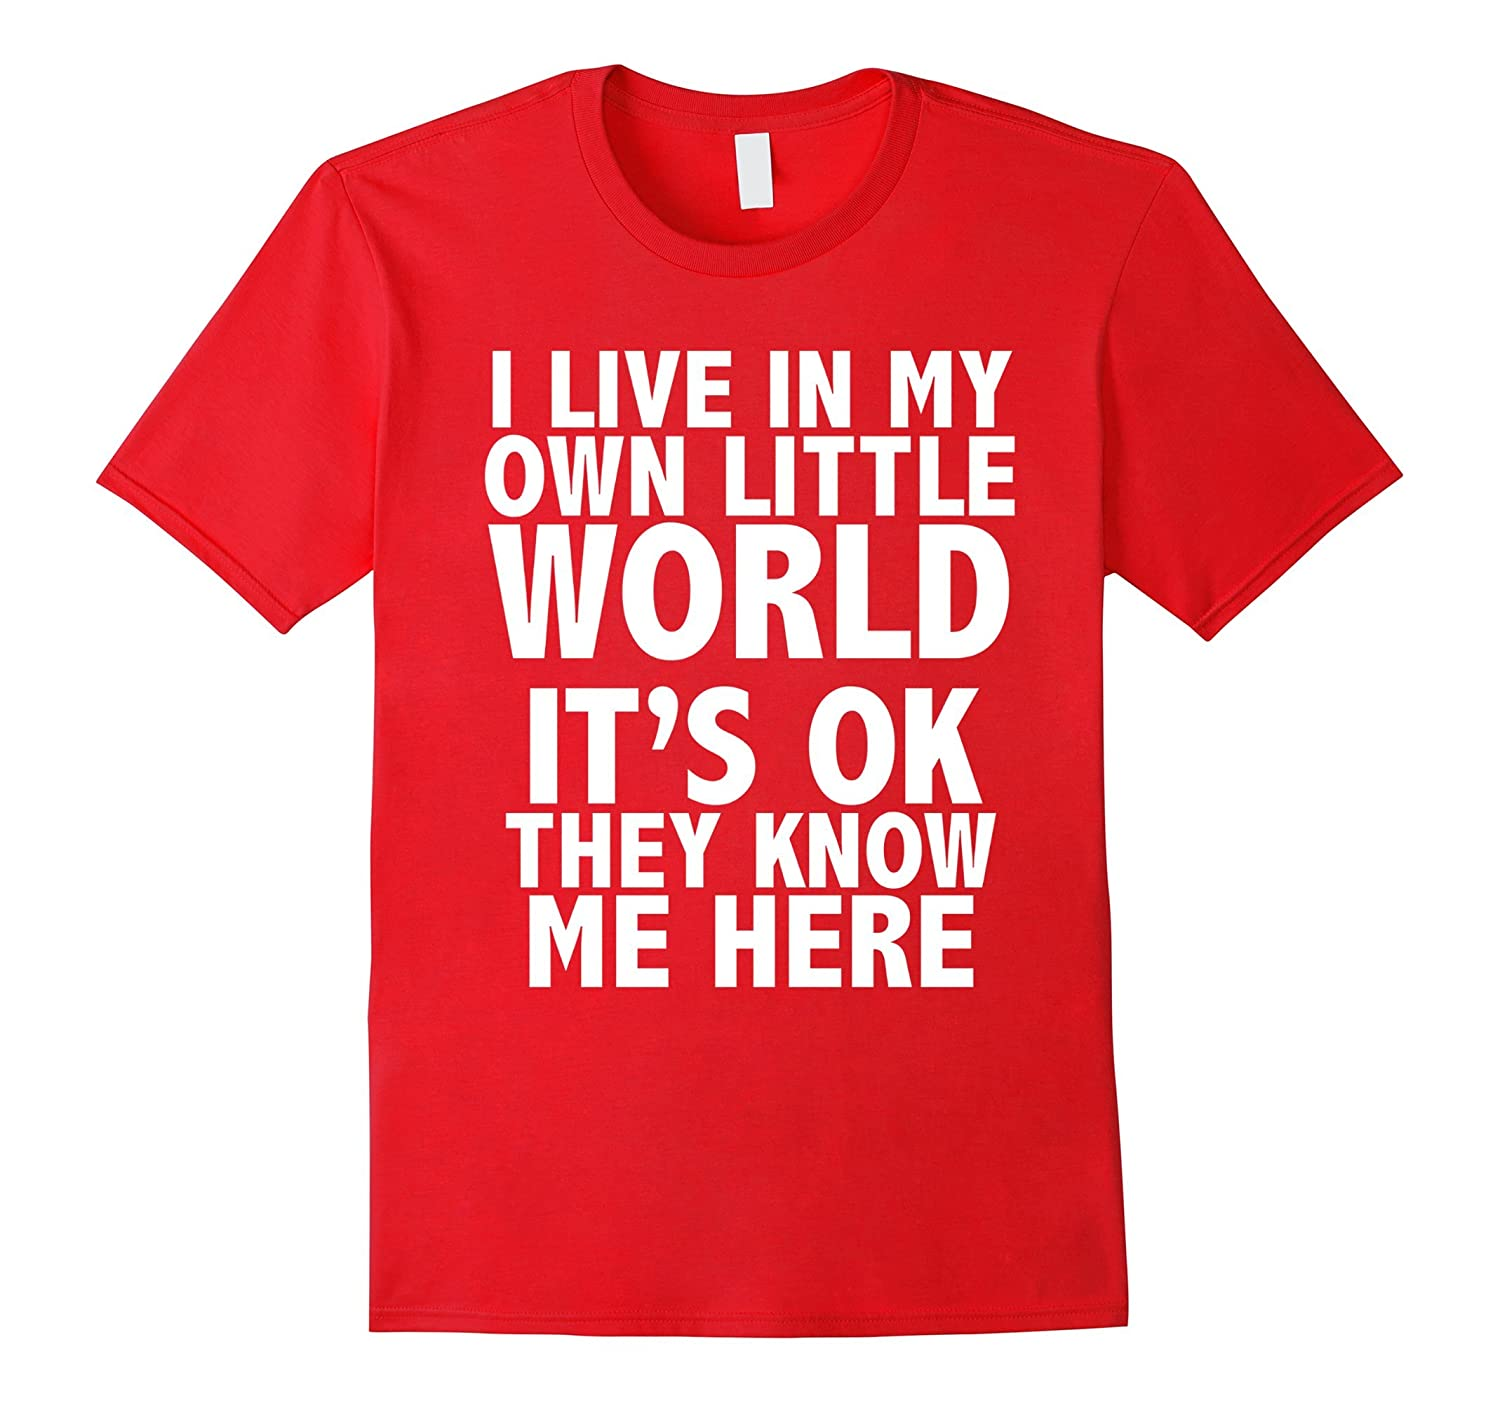 I live in my own little world T-Shirt